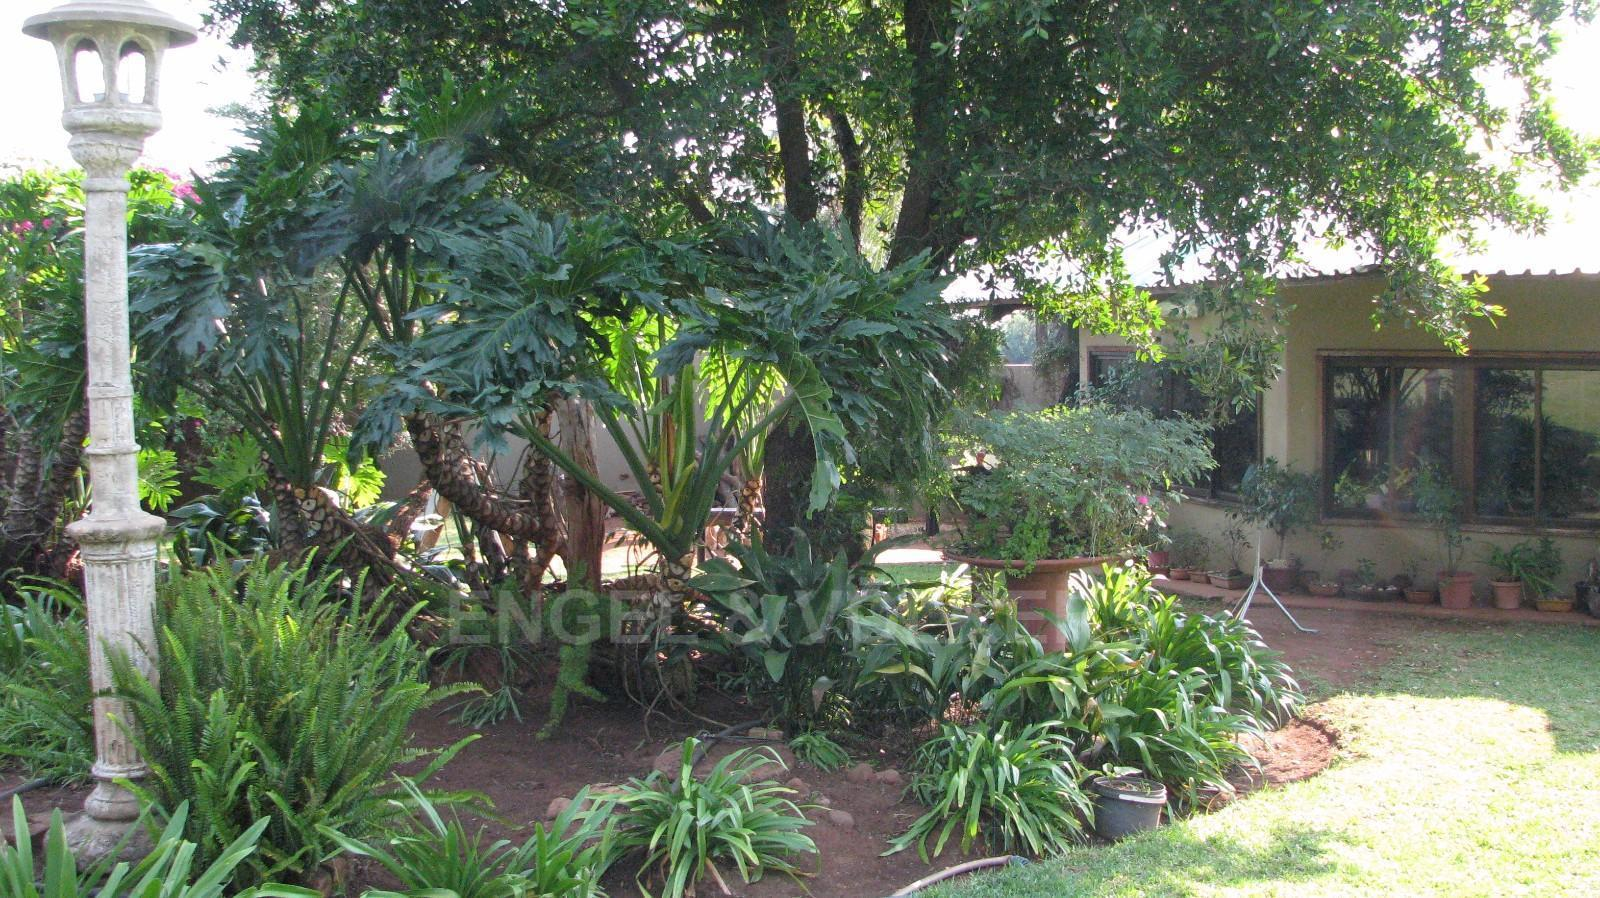 Land in Farms - Garden area at main property